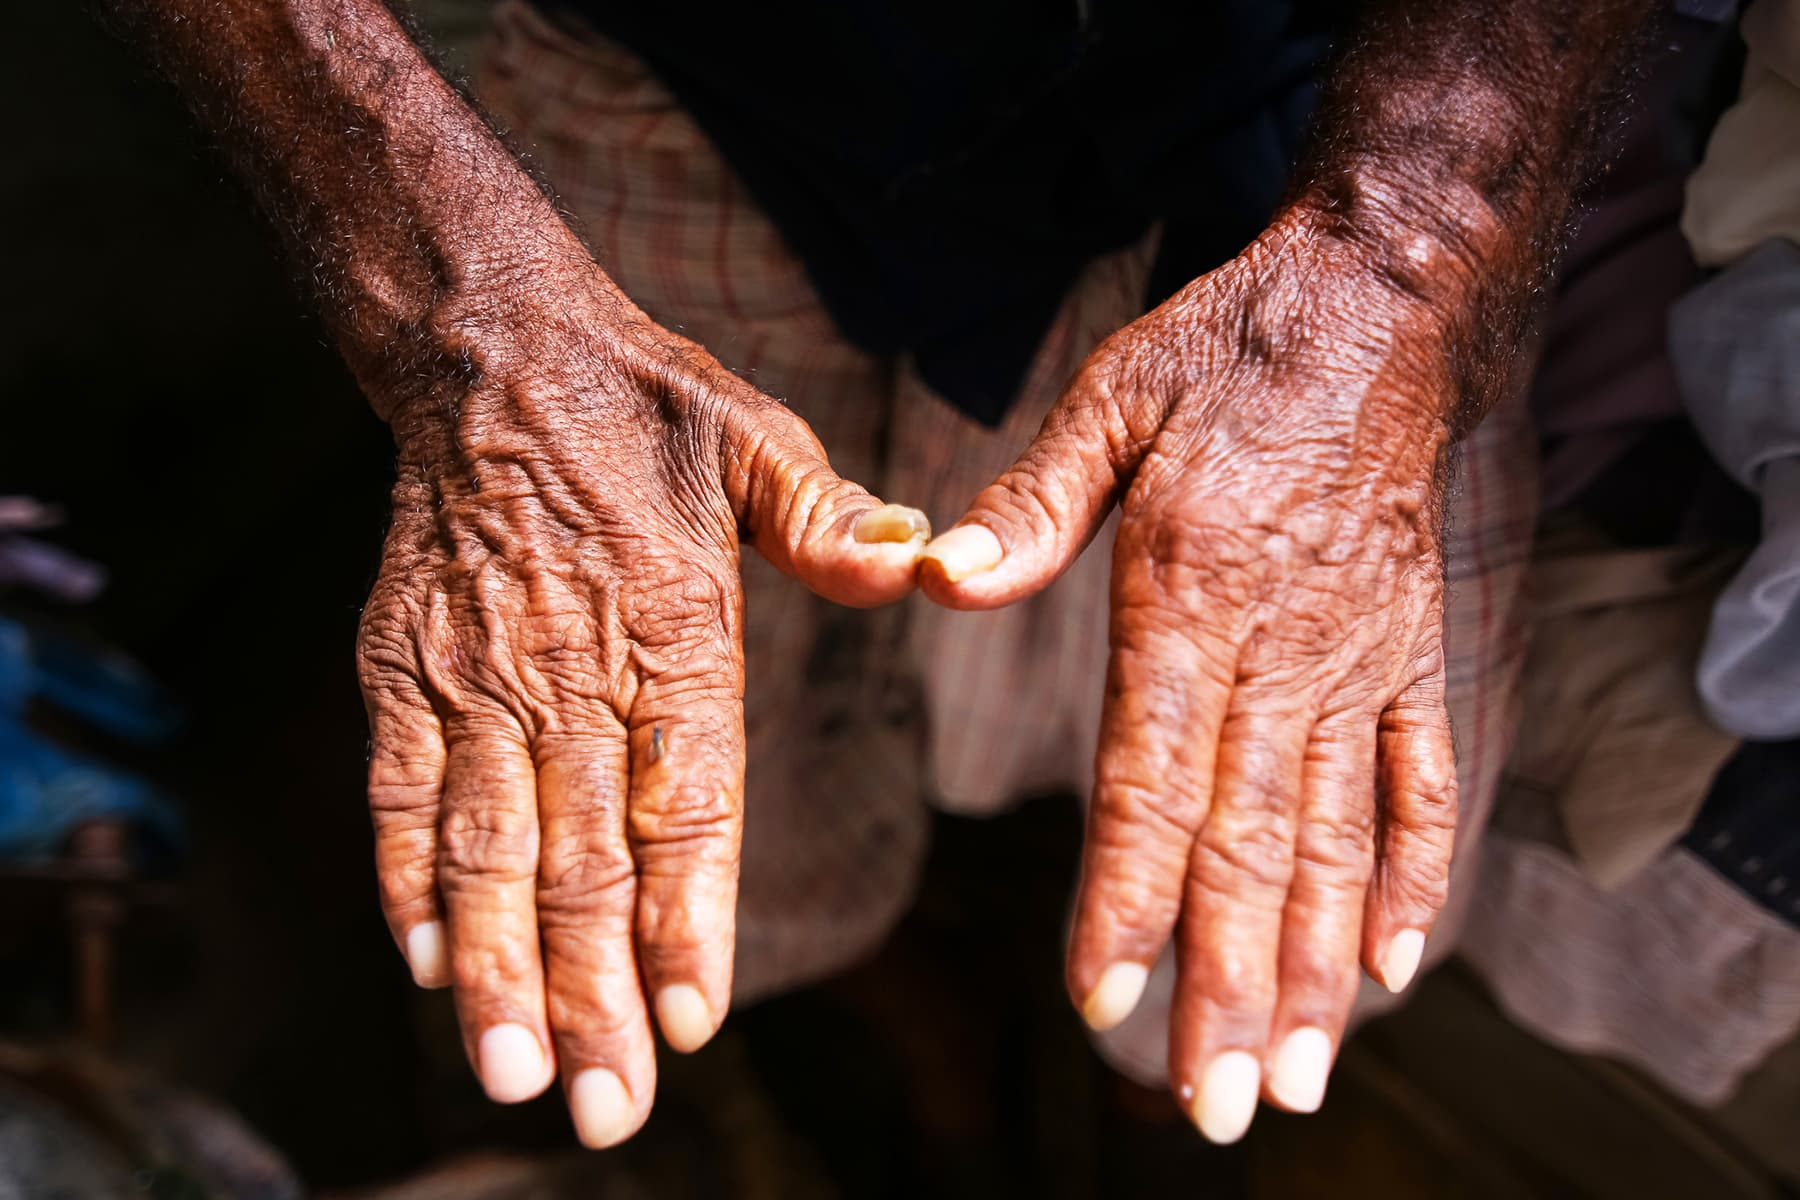 Mohmmad Hanif's hands after over a half-century's worth of work.